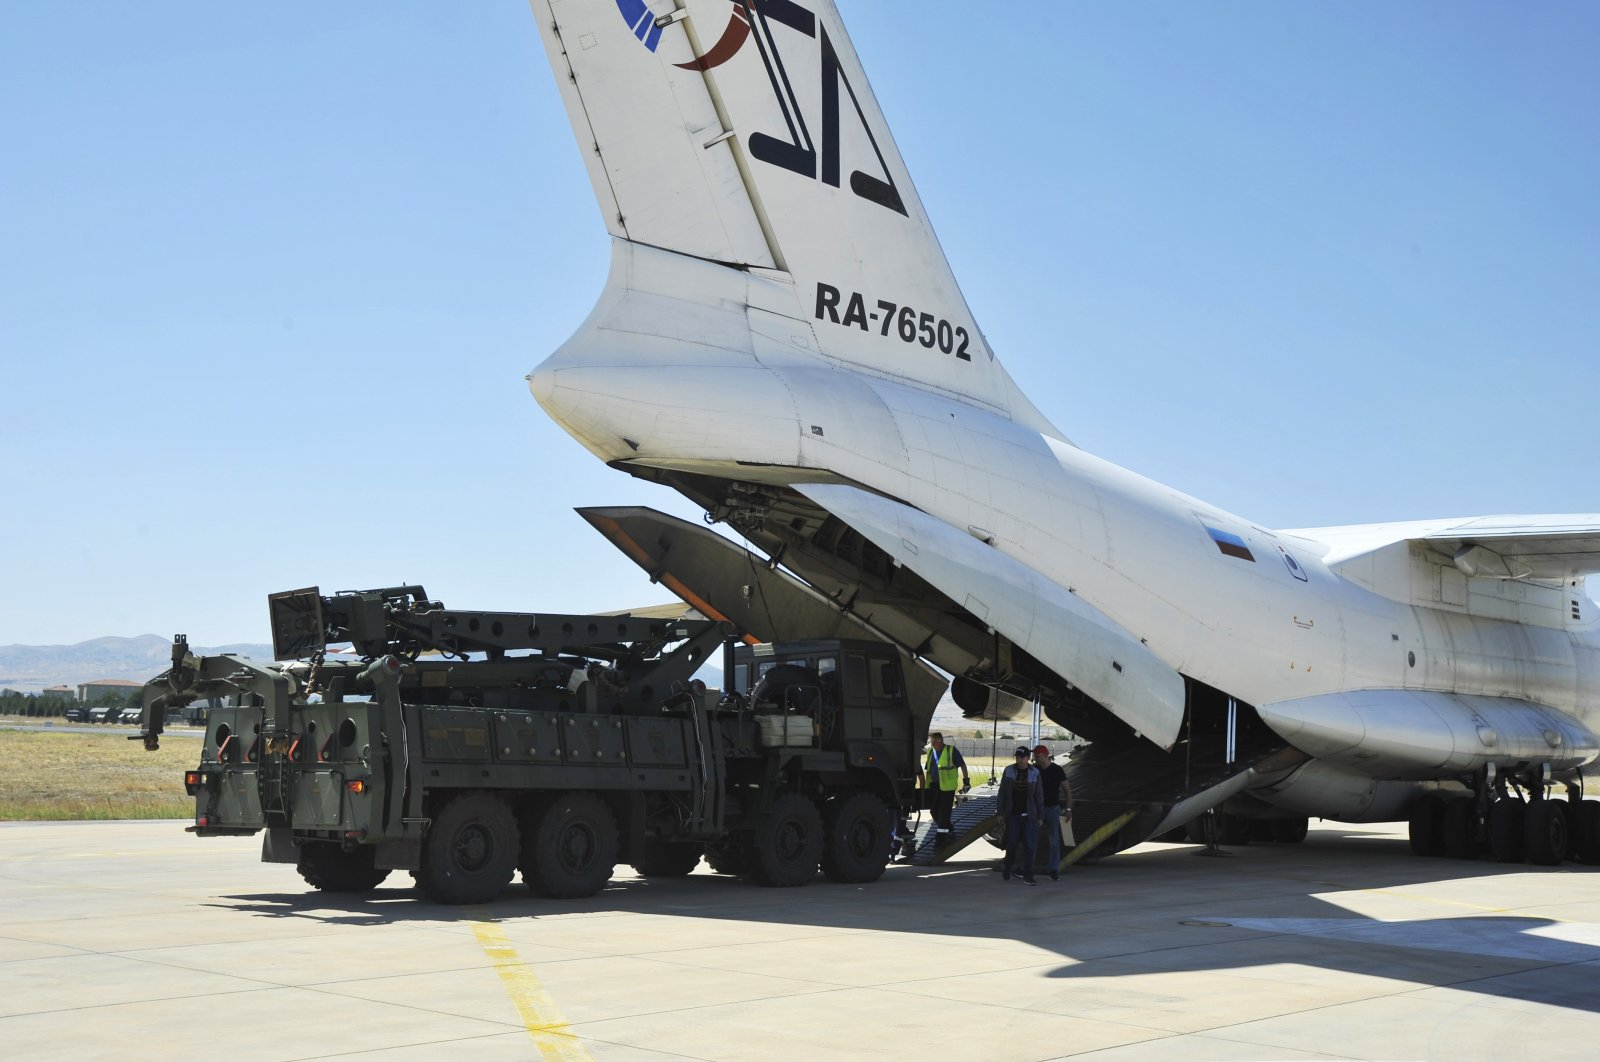 A Russian transport aircraft, carrying parts of the S-400 air defense systems, lands at Murted military airport outside Ankara, Turkey, Aug. 27, 2019. (Turkish Defense Ministry via AP)